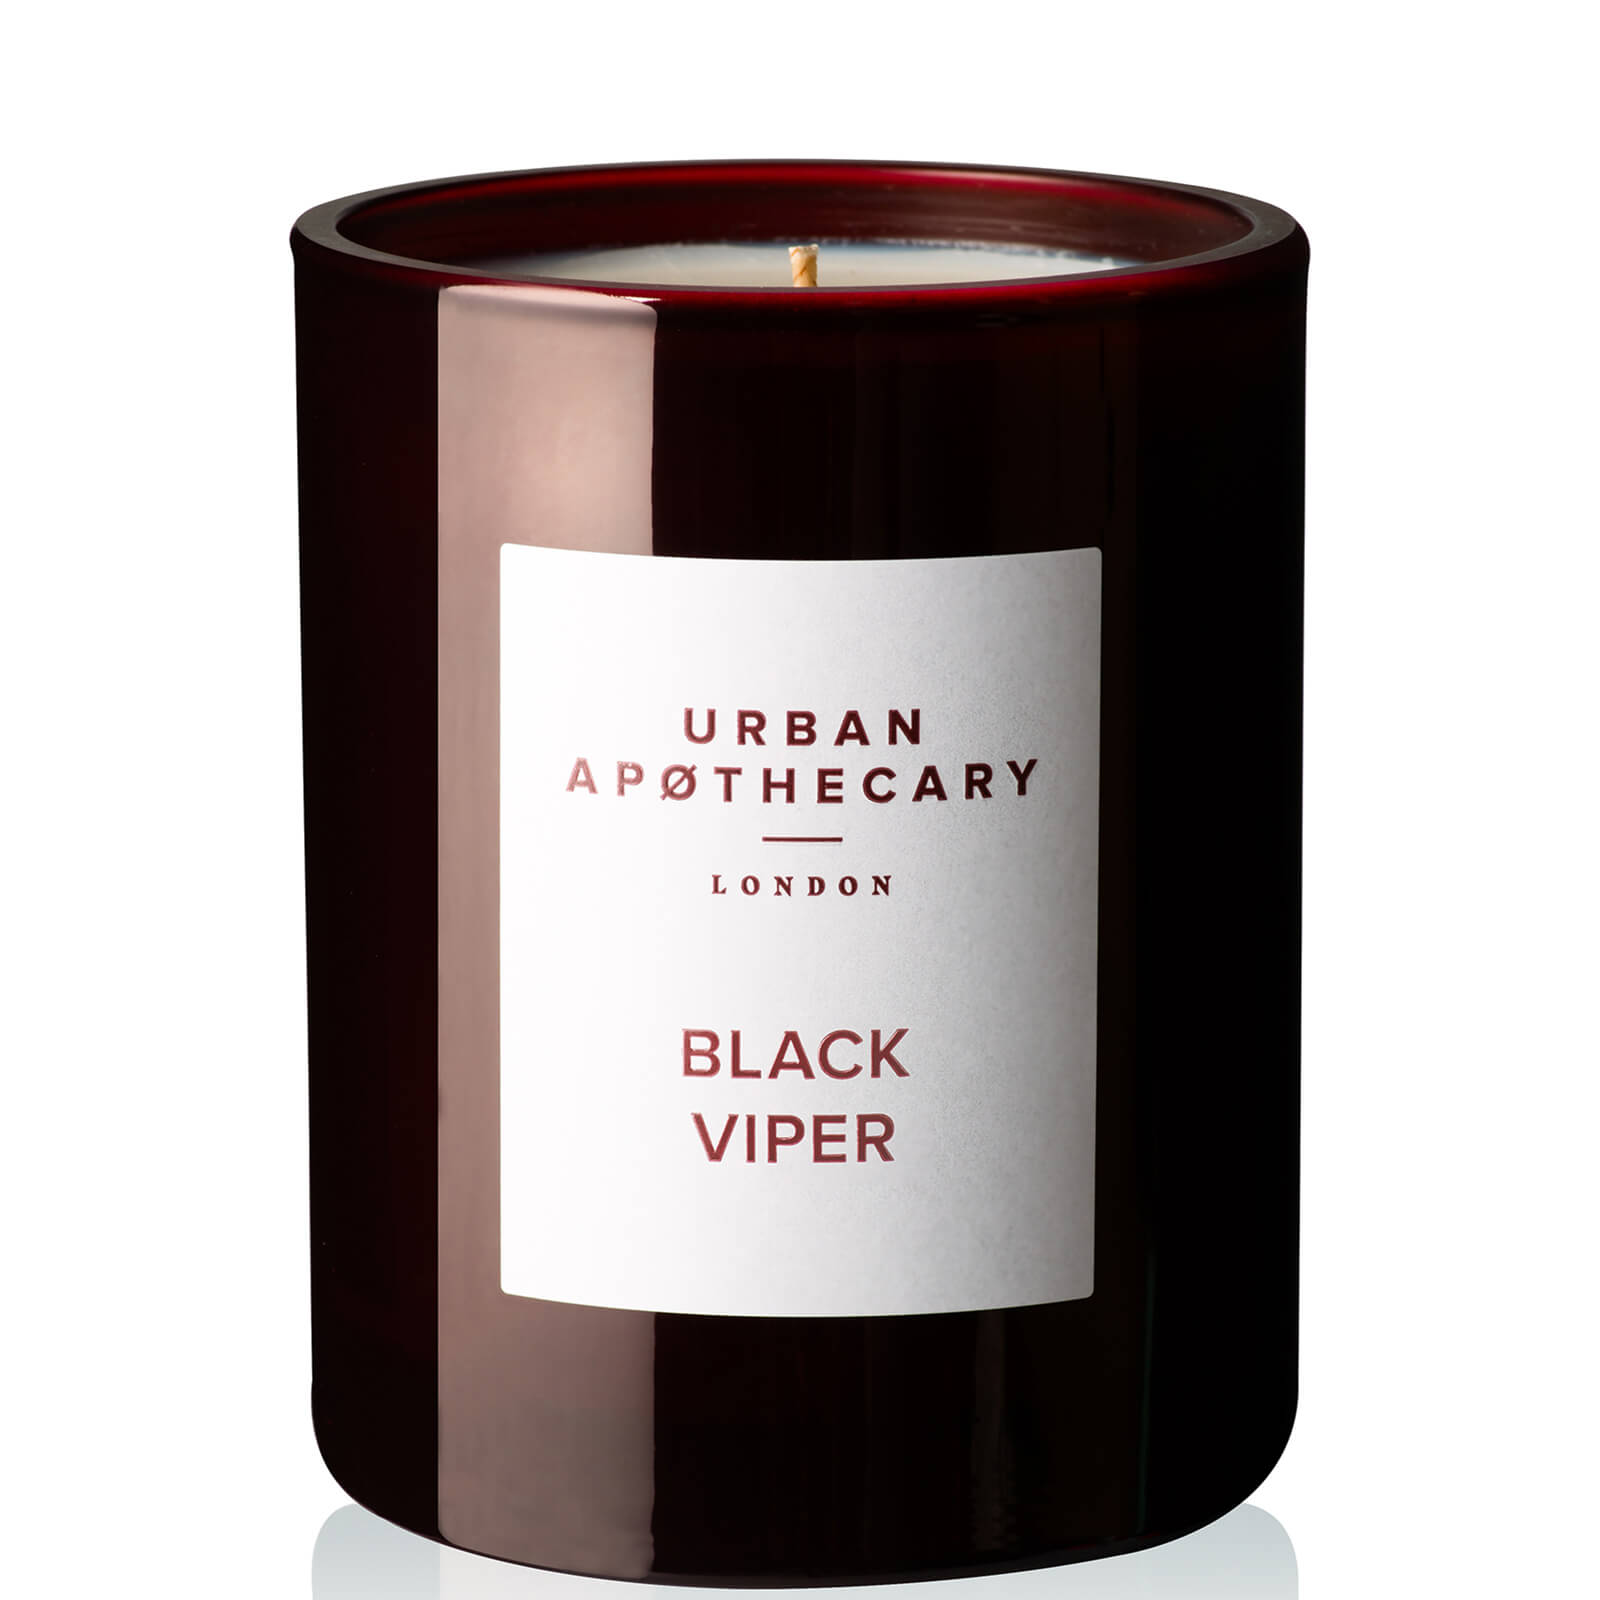 Urban Apothecary Black Viper Luxury Candle 300g